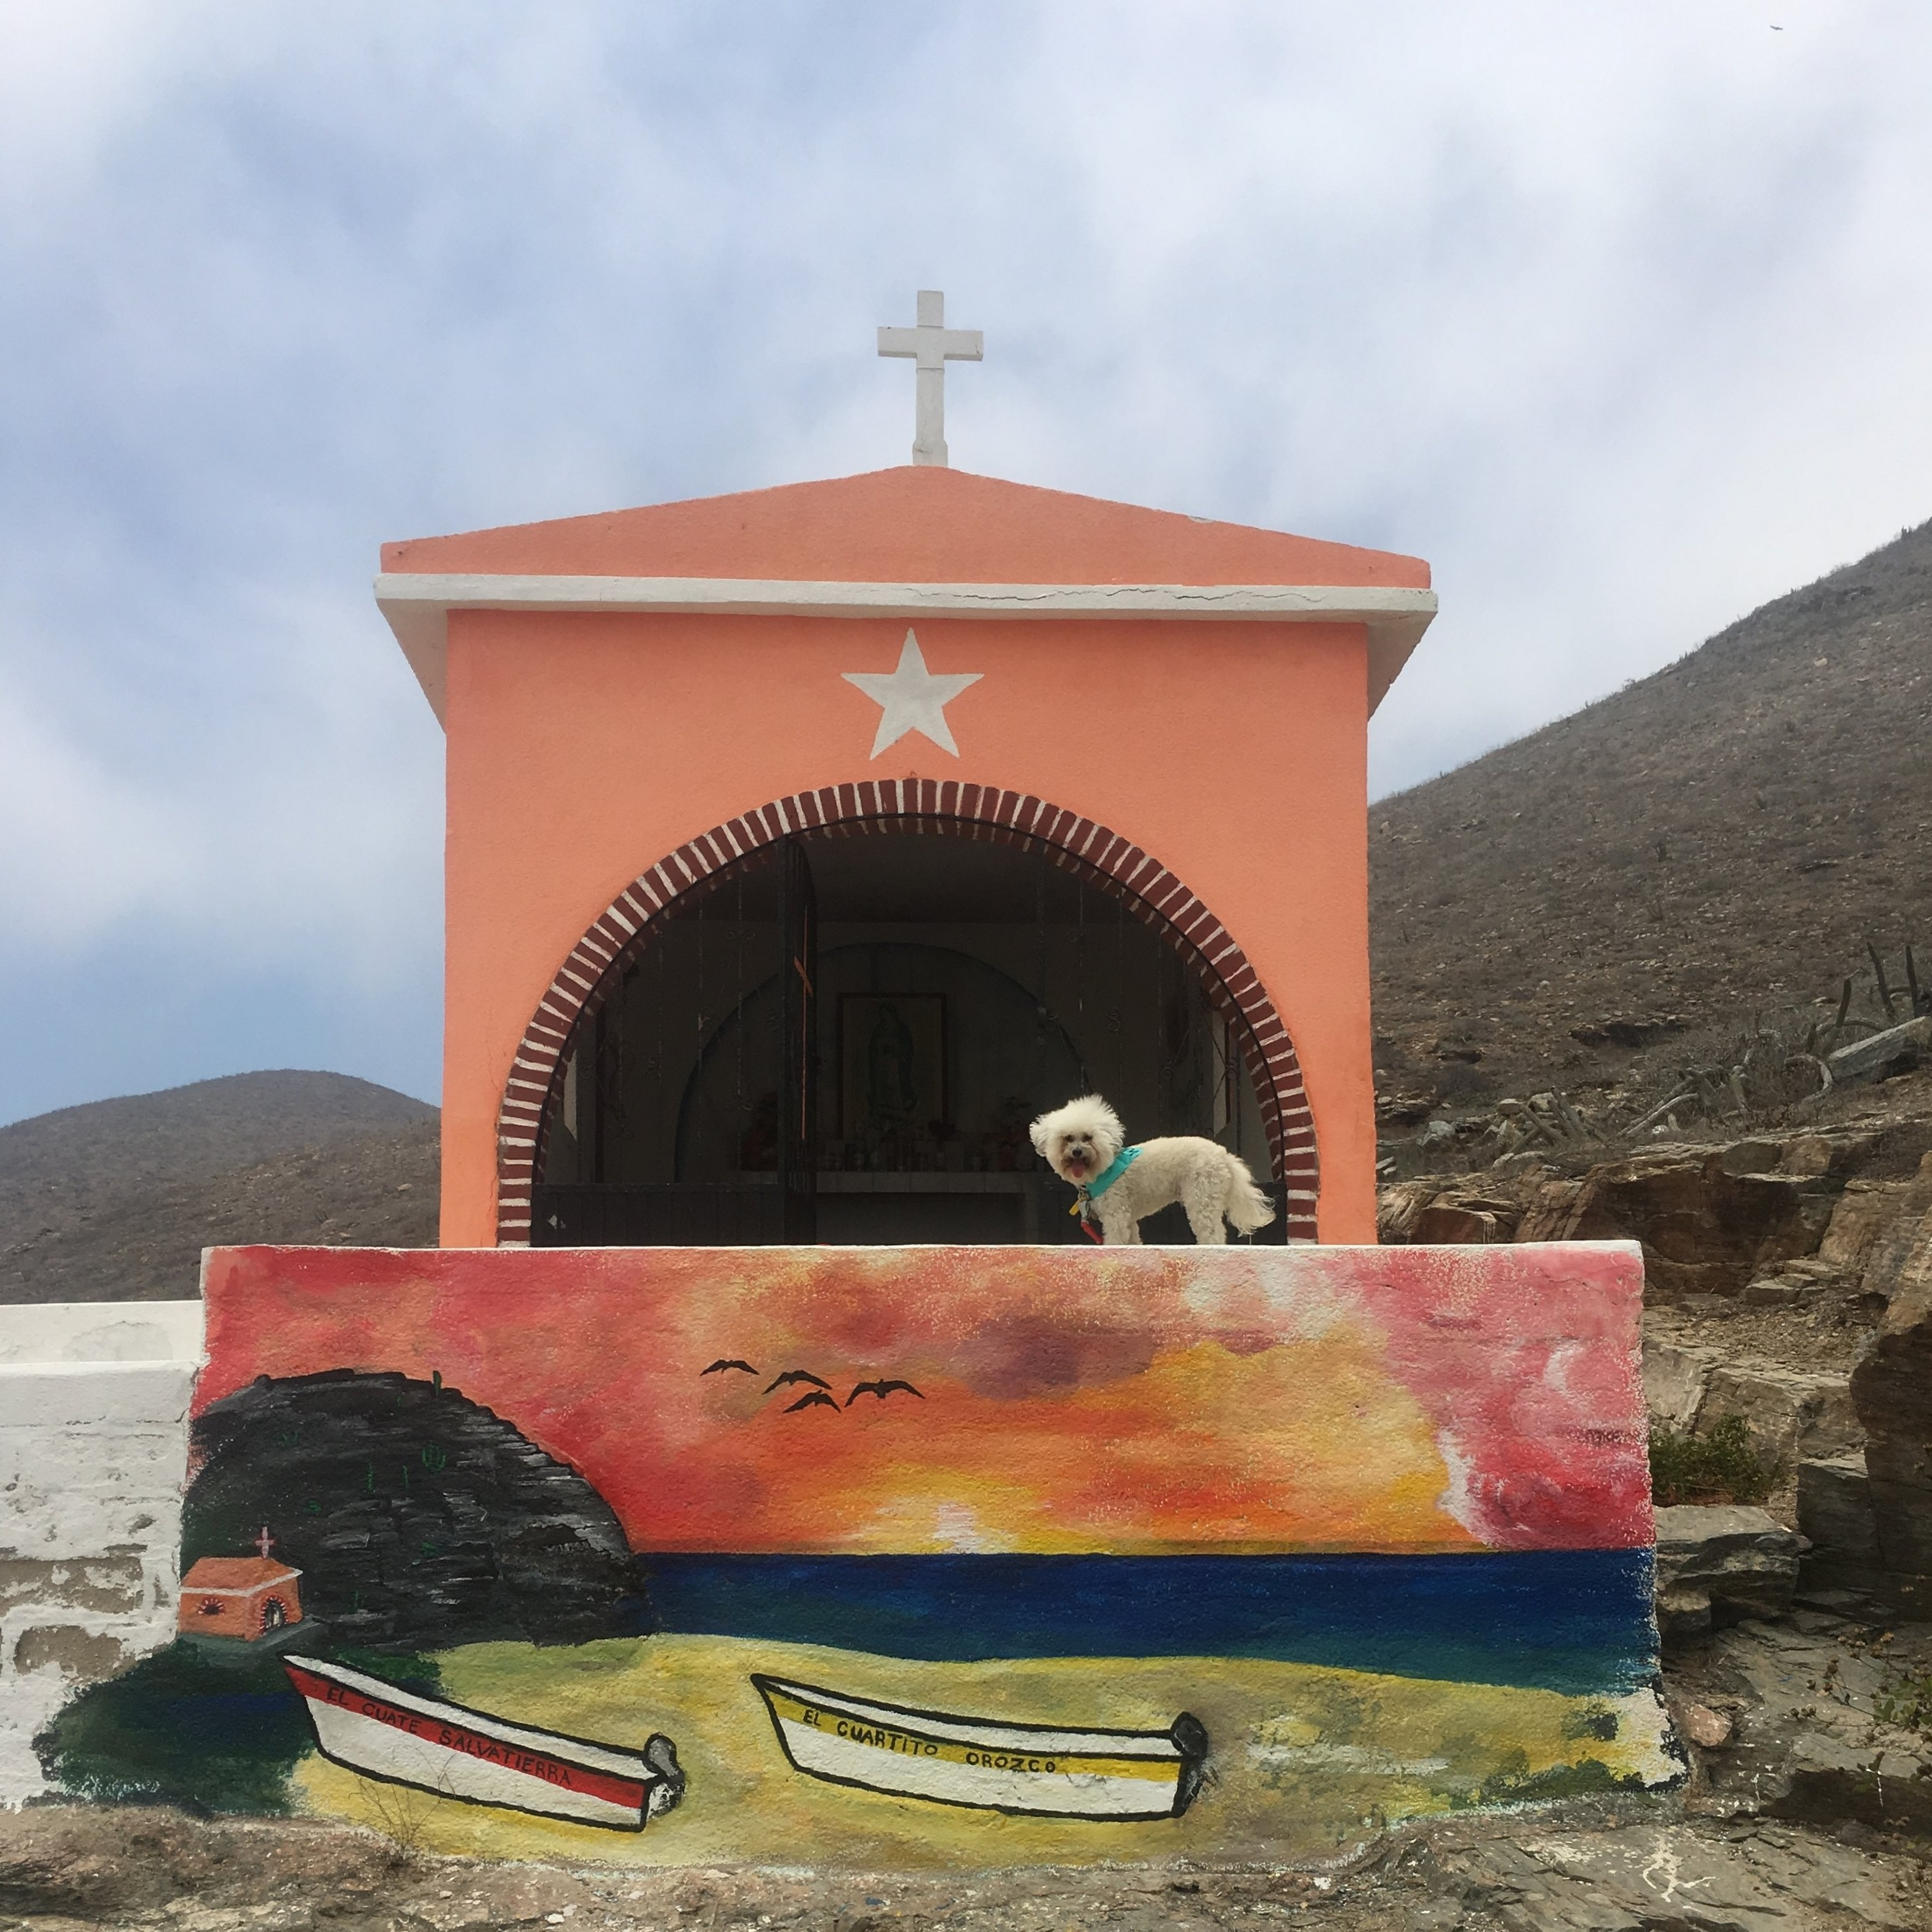 Watson at the sanctuary by the Hotel San Cristobal in Todos Santos, BCS Mexico | Watson & Walls